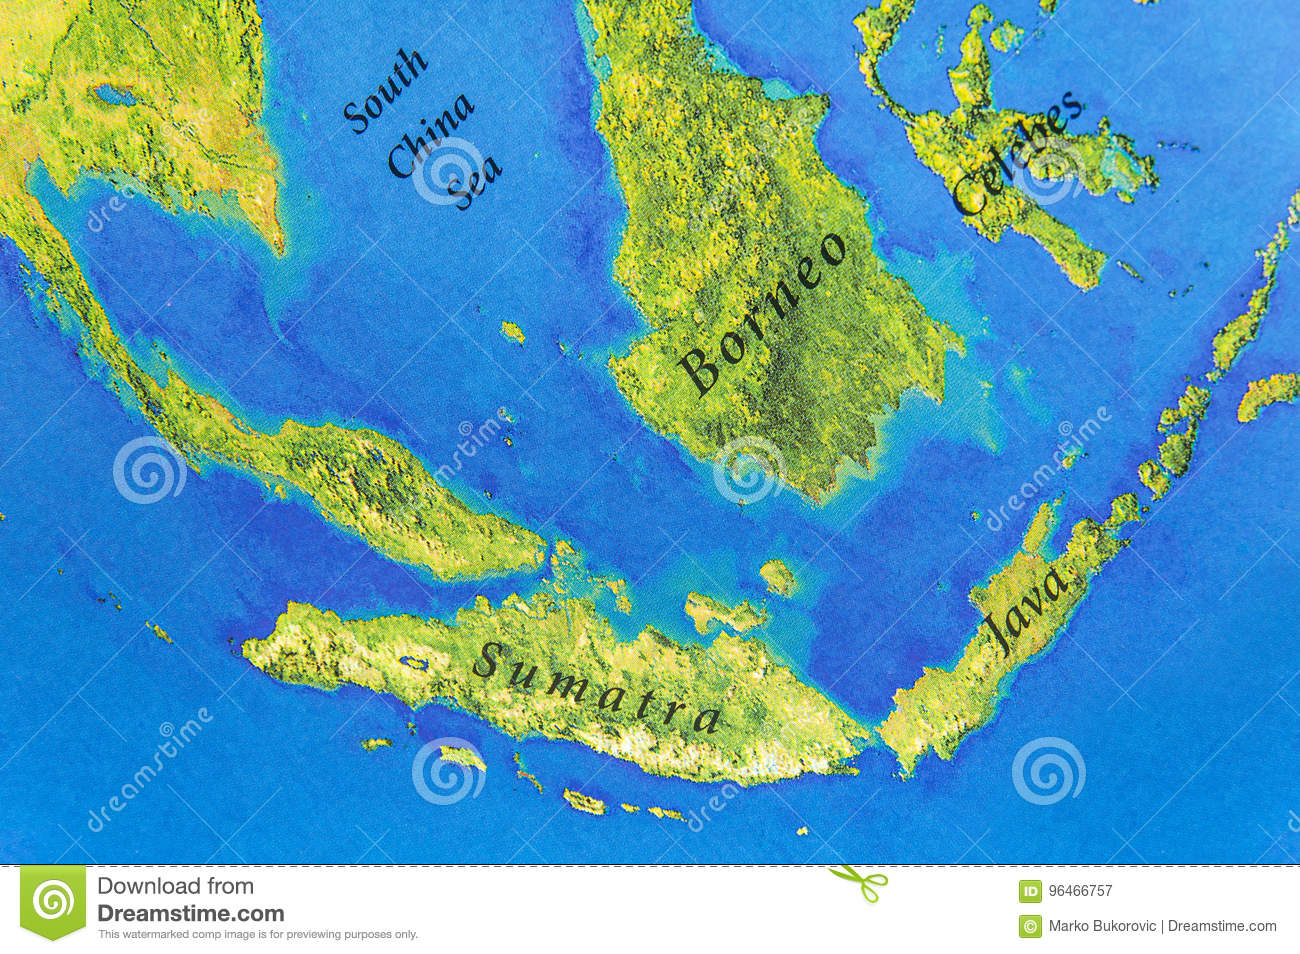 Picture of: Map Sumatra Photos Free Royalty Free Stock Photos From Dreamstime